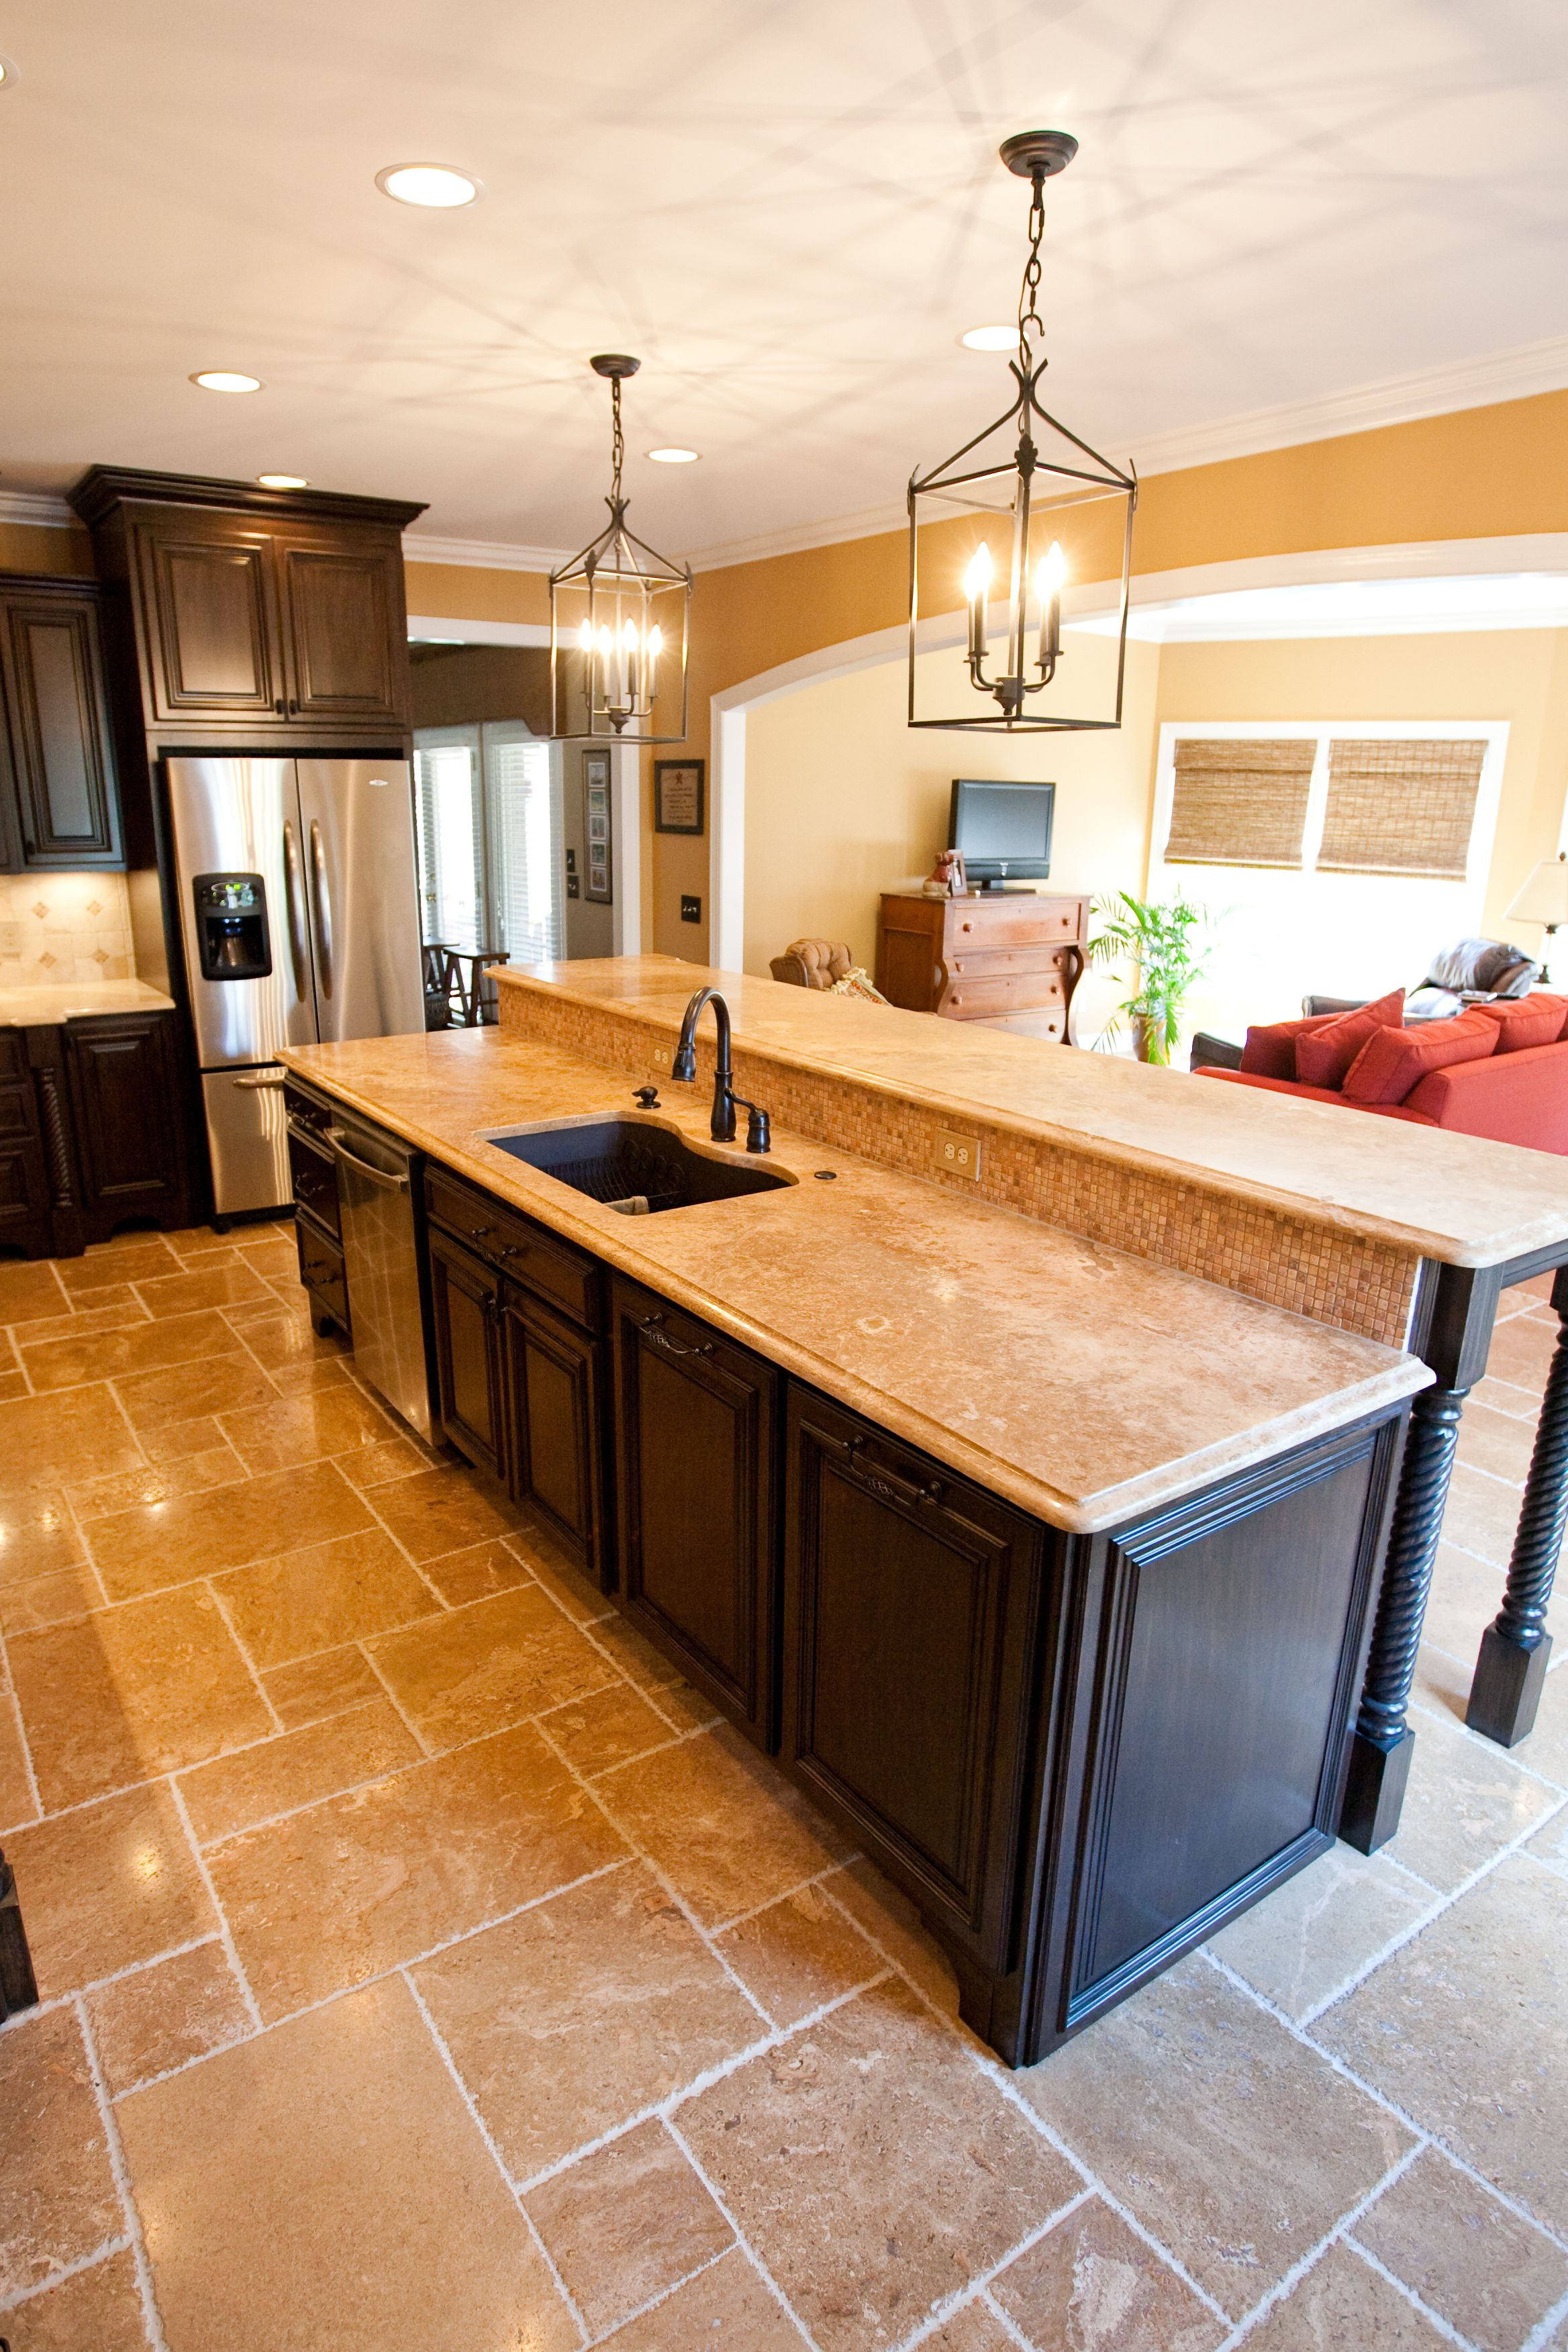 Square Kitchen Island Wood Cabinets Lm 43 Jpg 2 3363 504 Pixels Also Raise The Right End To